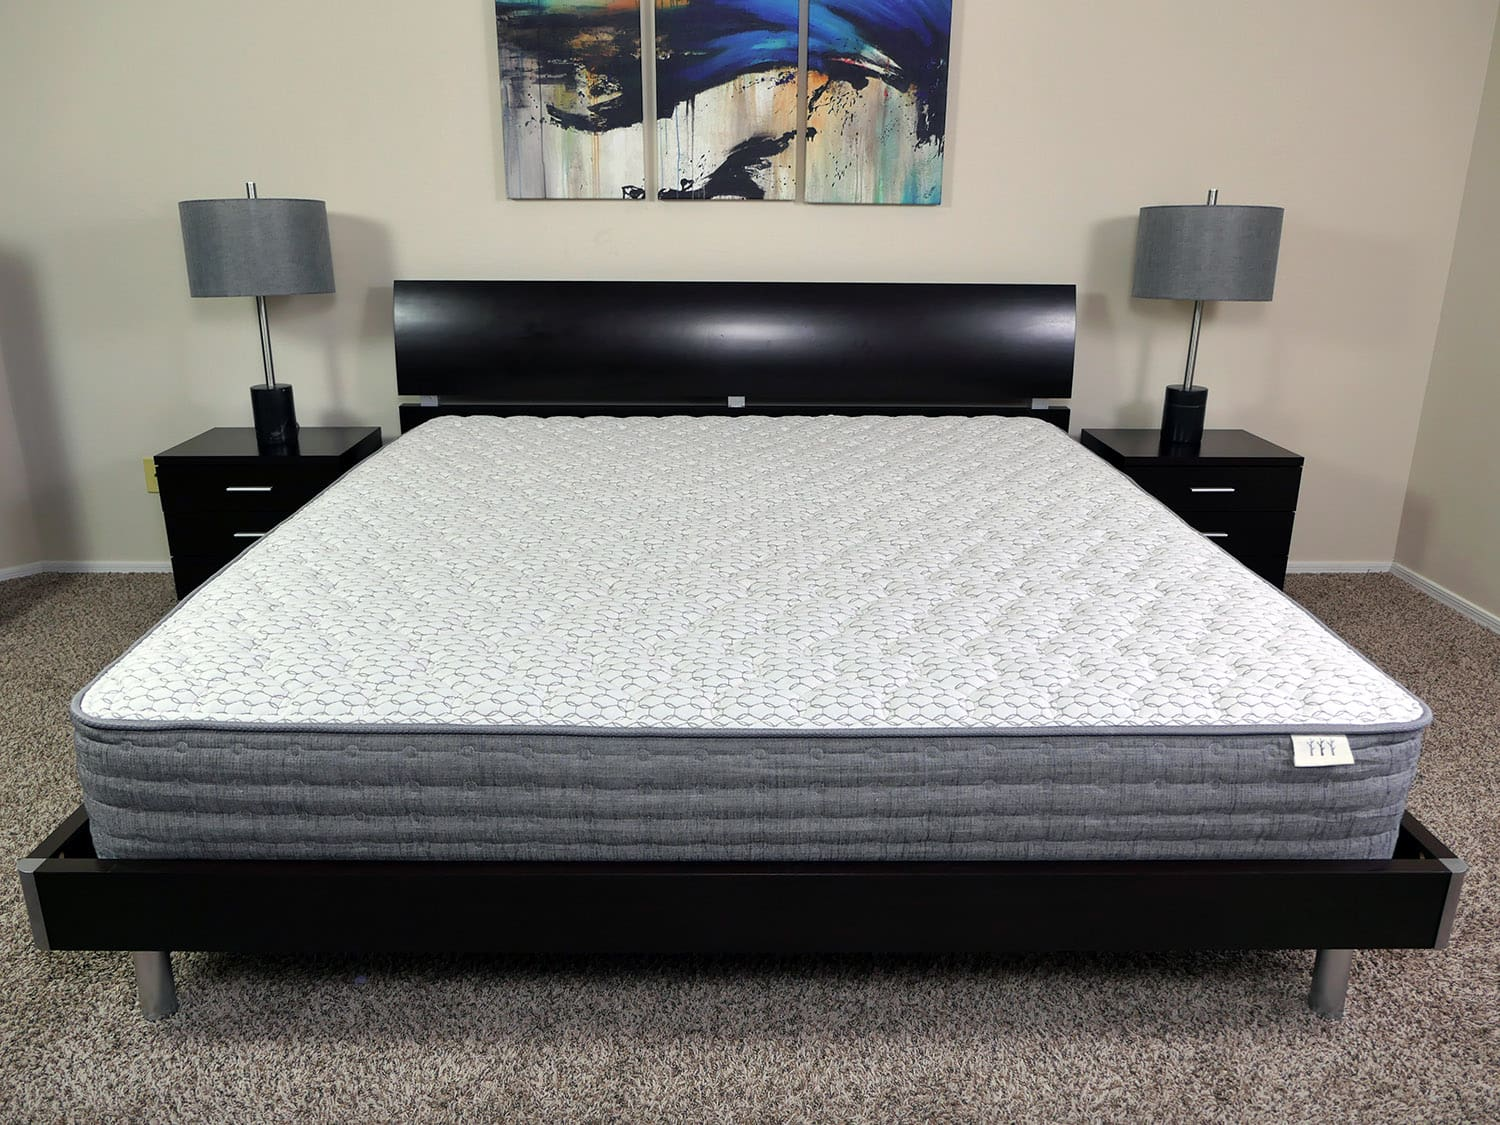 mattress brentwood mattresses to guide reviews the